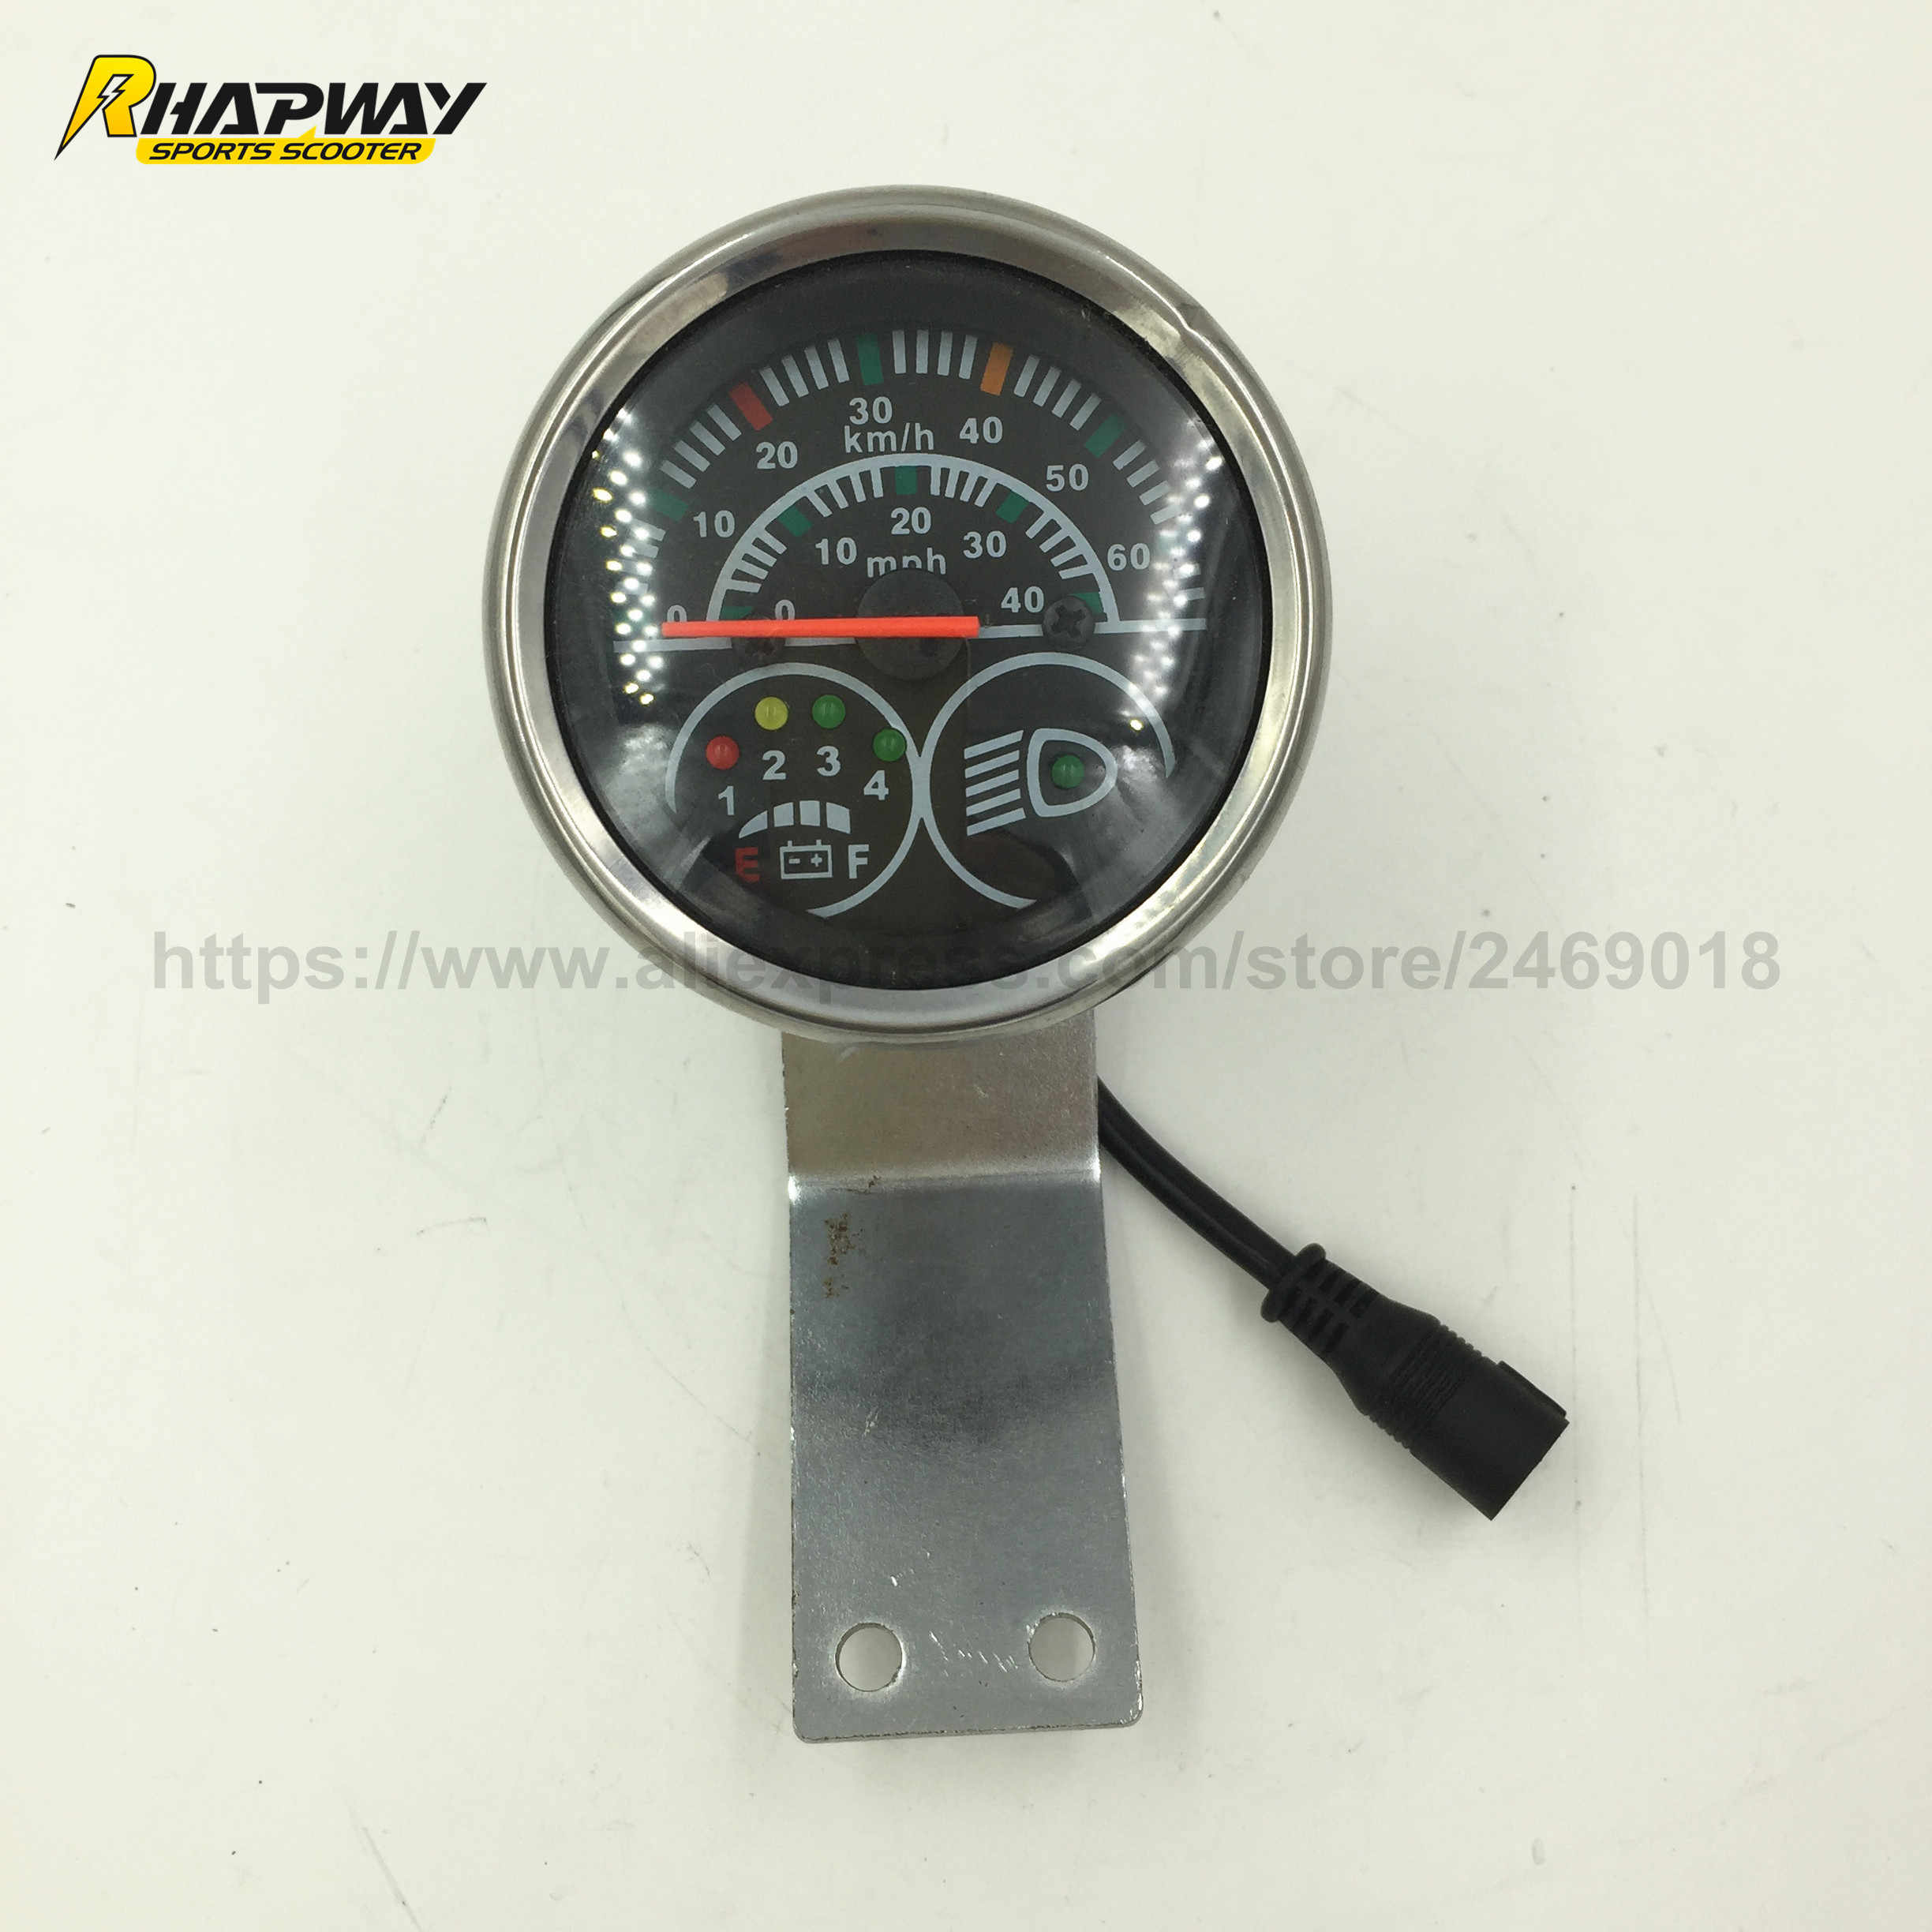 Electric Scooter Speedometer 48V Scooter Speed Indicator with Battery Power&Headlight Indicator, 5-core Wires Male Connector